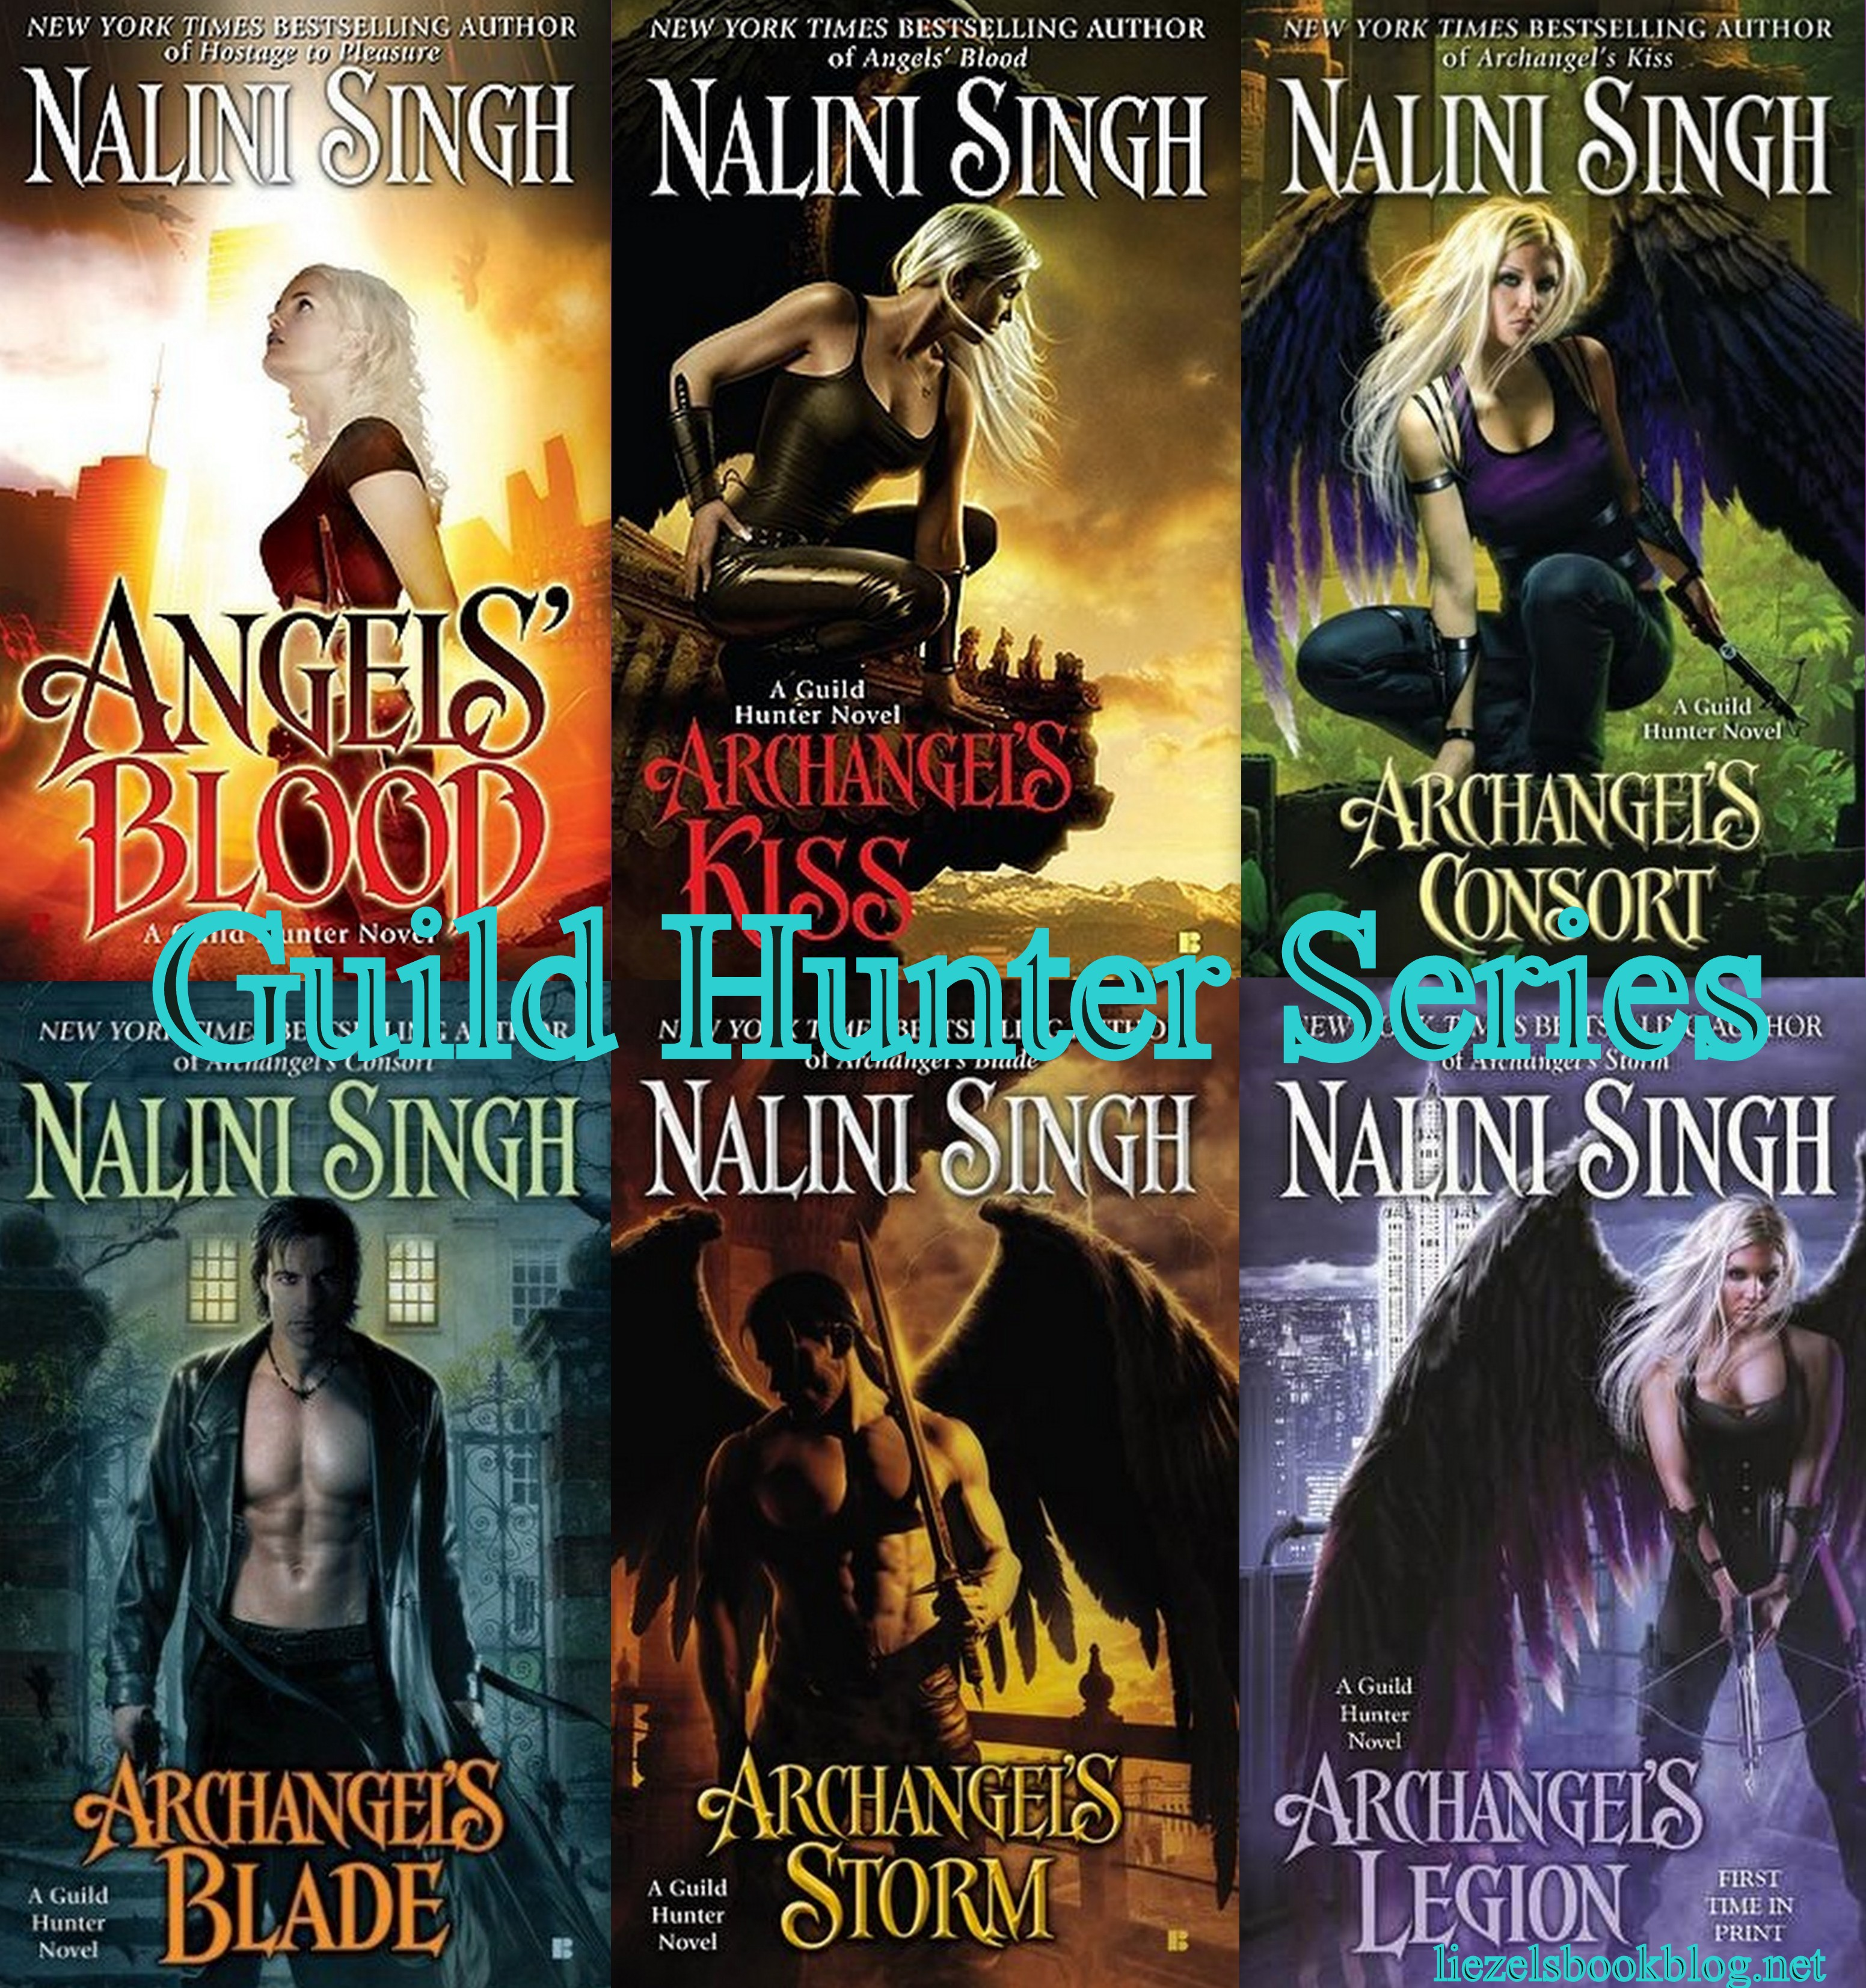 Home  Nalini Singh  NYT bestselling author